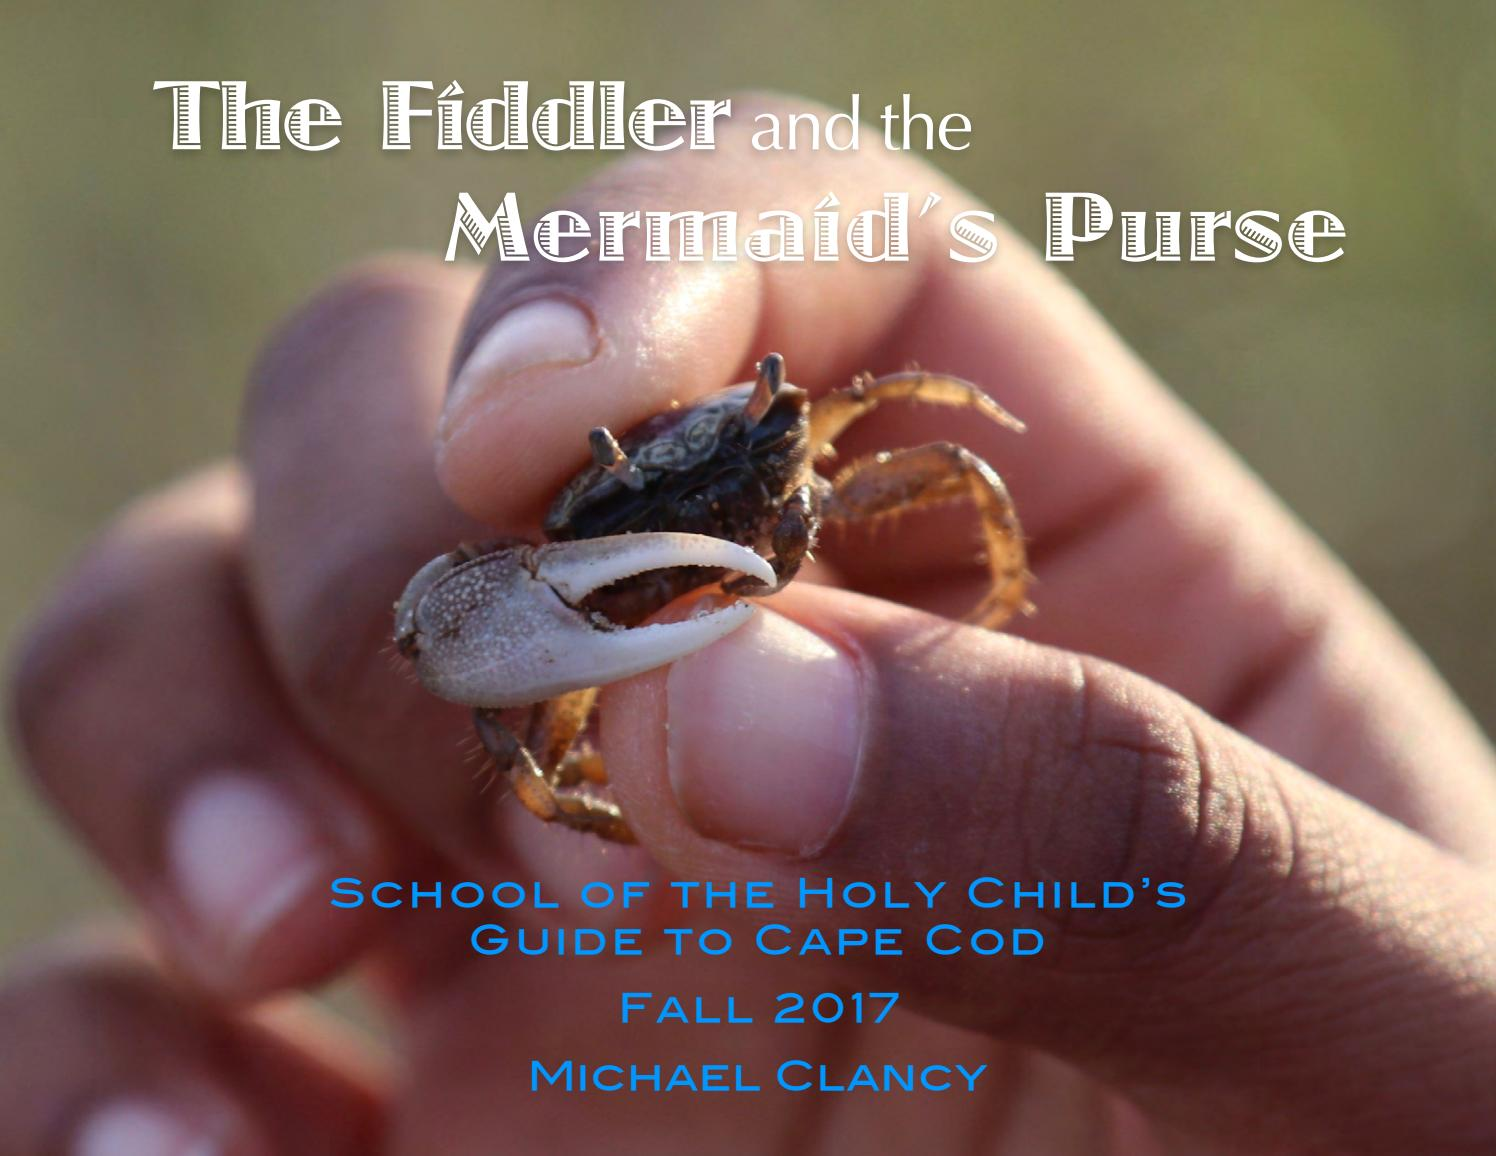 HC Fiddler- Fall 2017 vfinal by School of the Holy Child - issuu